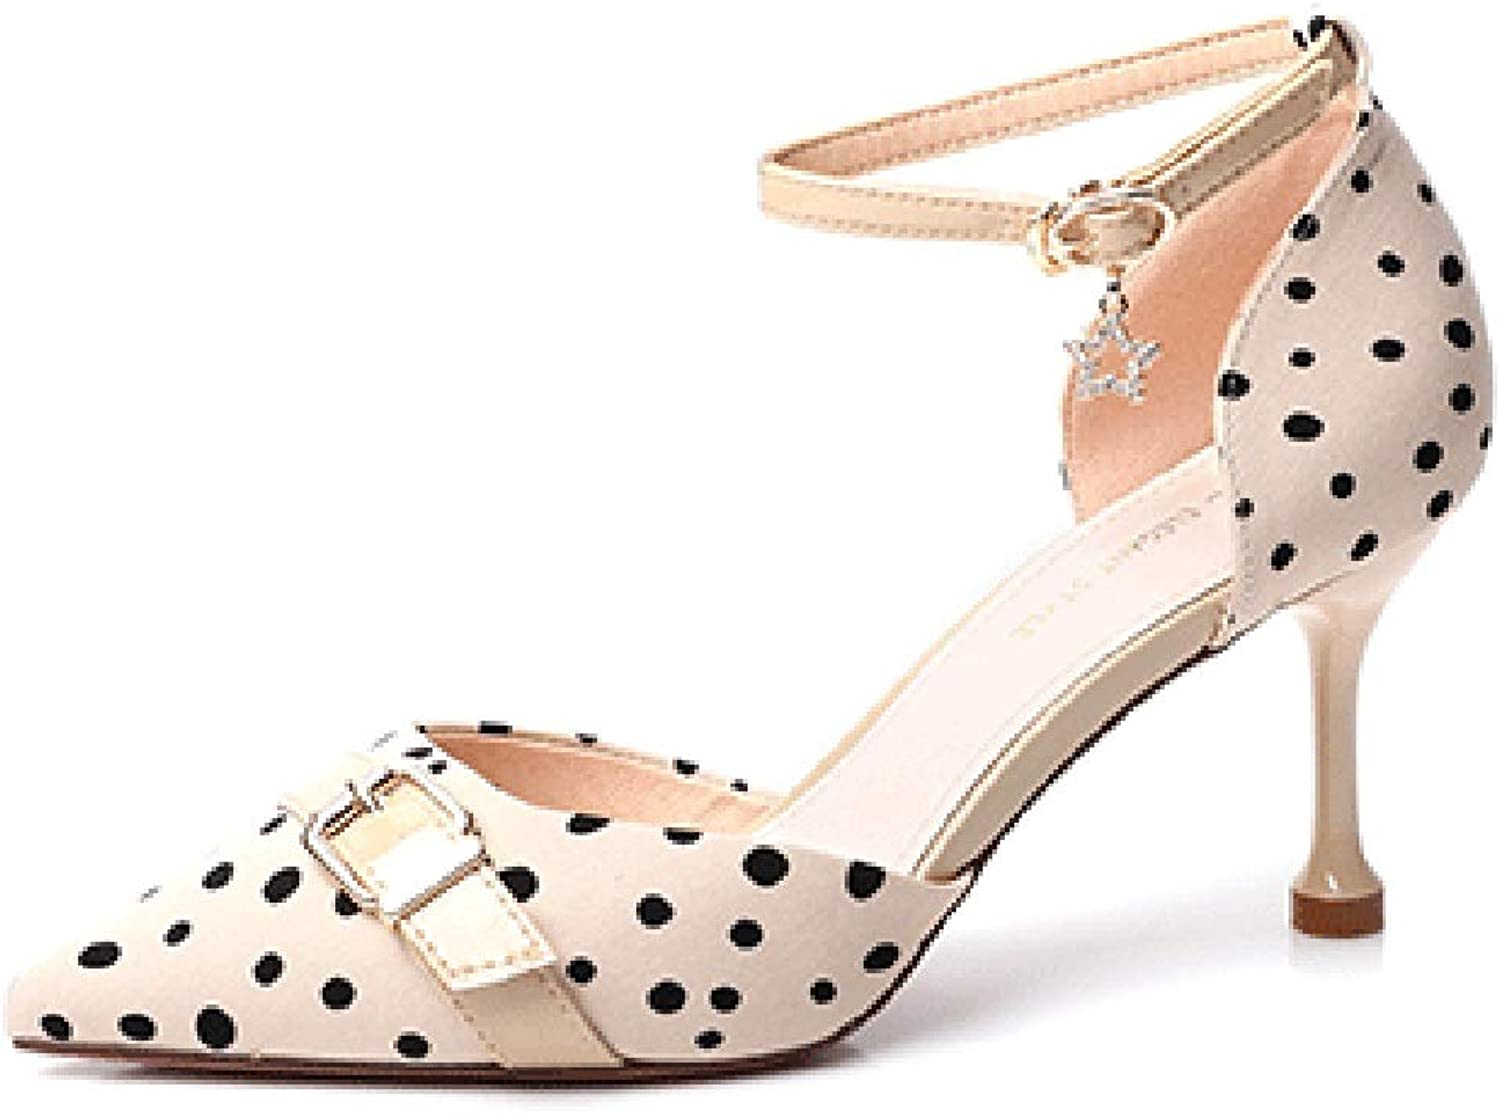 Women's Summer High Heels Stiletto Buckle with Sandals Mid-Heeled Pointed Polka Dot shoes Kitten Heels for Women Mid Heel Sandals for Women, Fashion (color   Beige, Size   38 US7.5)